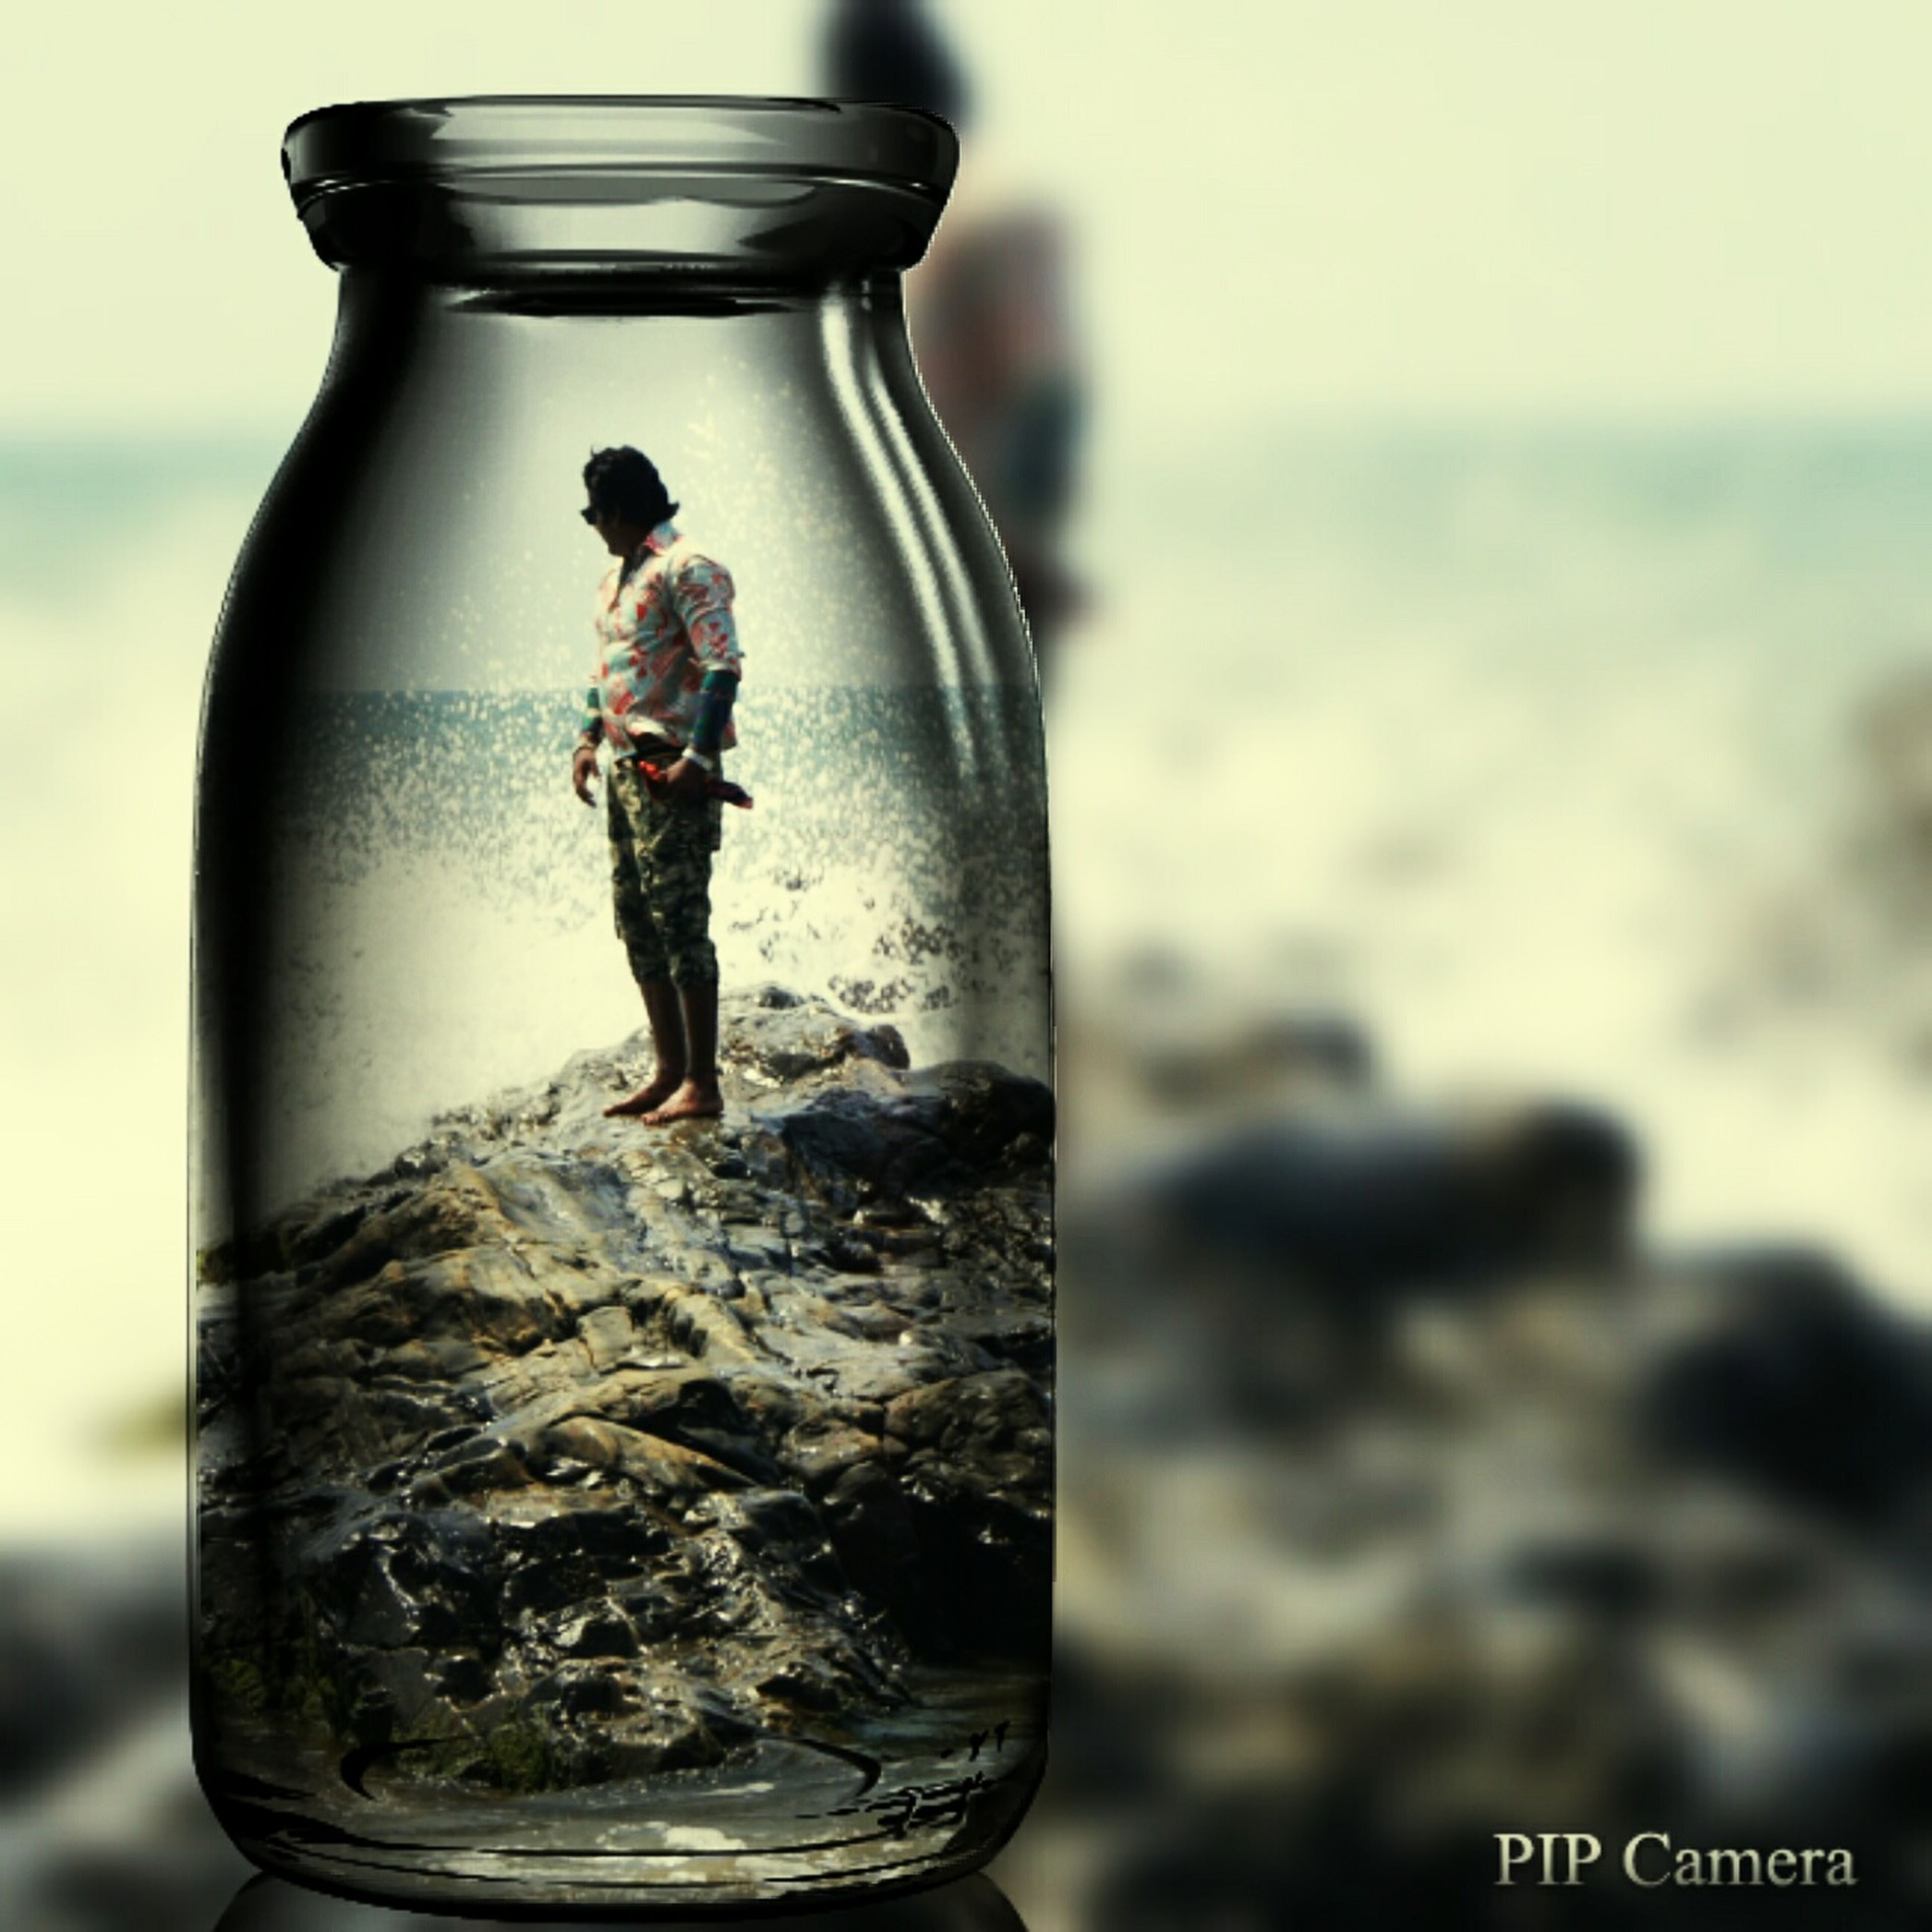 water, focus on foreground, sea, close-up, beach, selective focus, lifestyles, splashing, leisure activity, refreshment, shore, drink, day, holding, horizon over water, transparent, reflection, outdoors